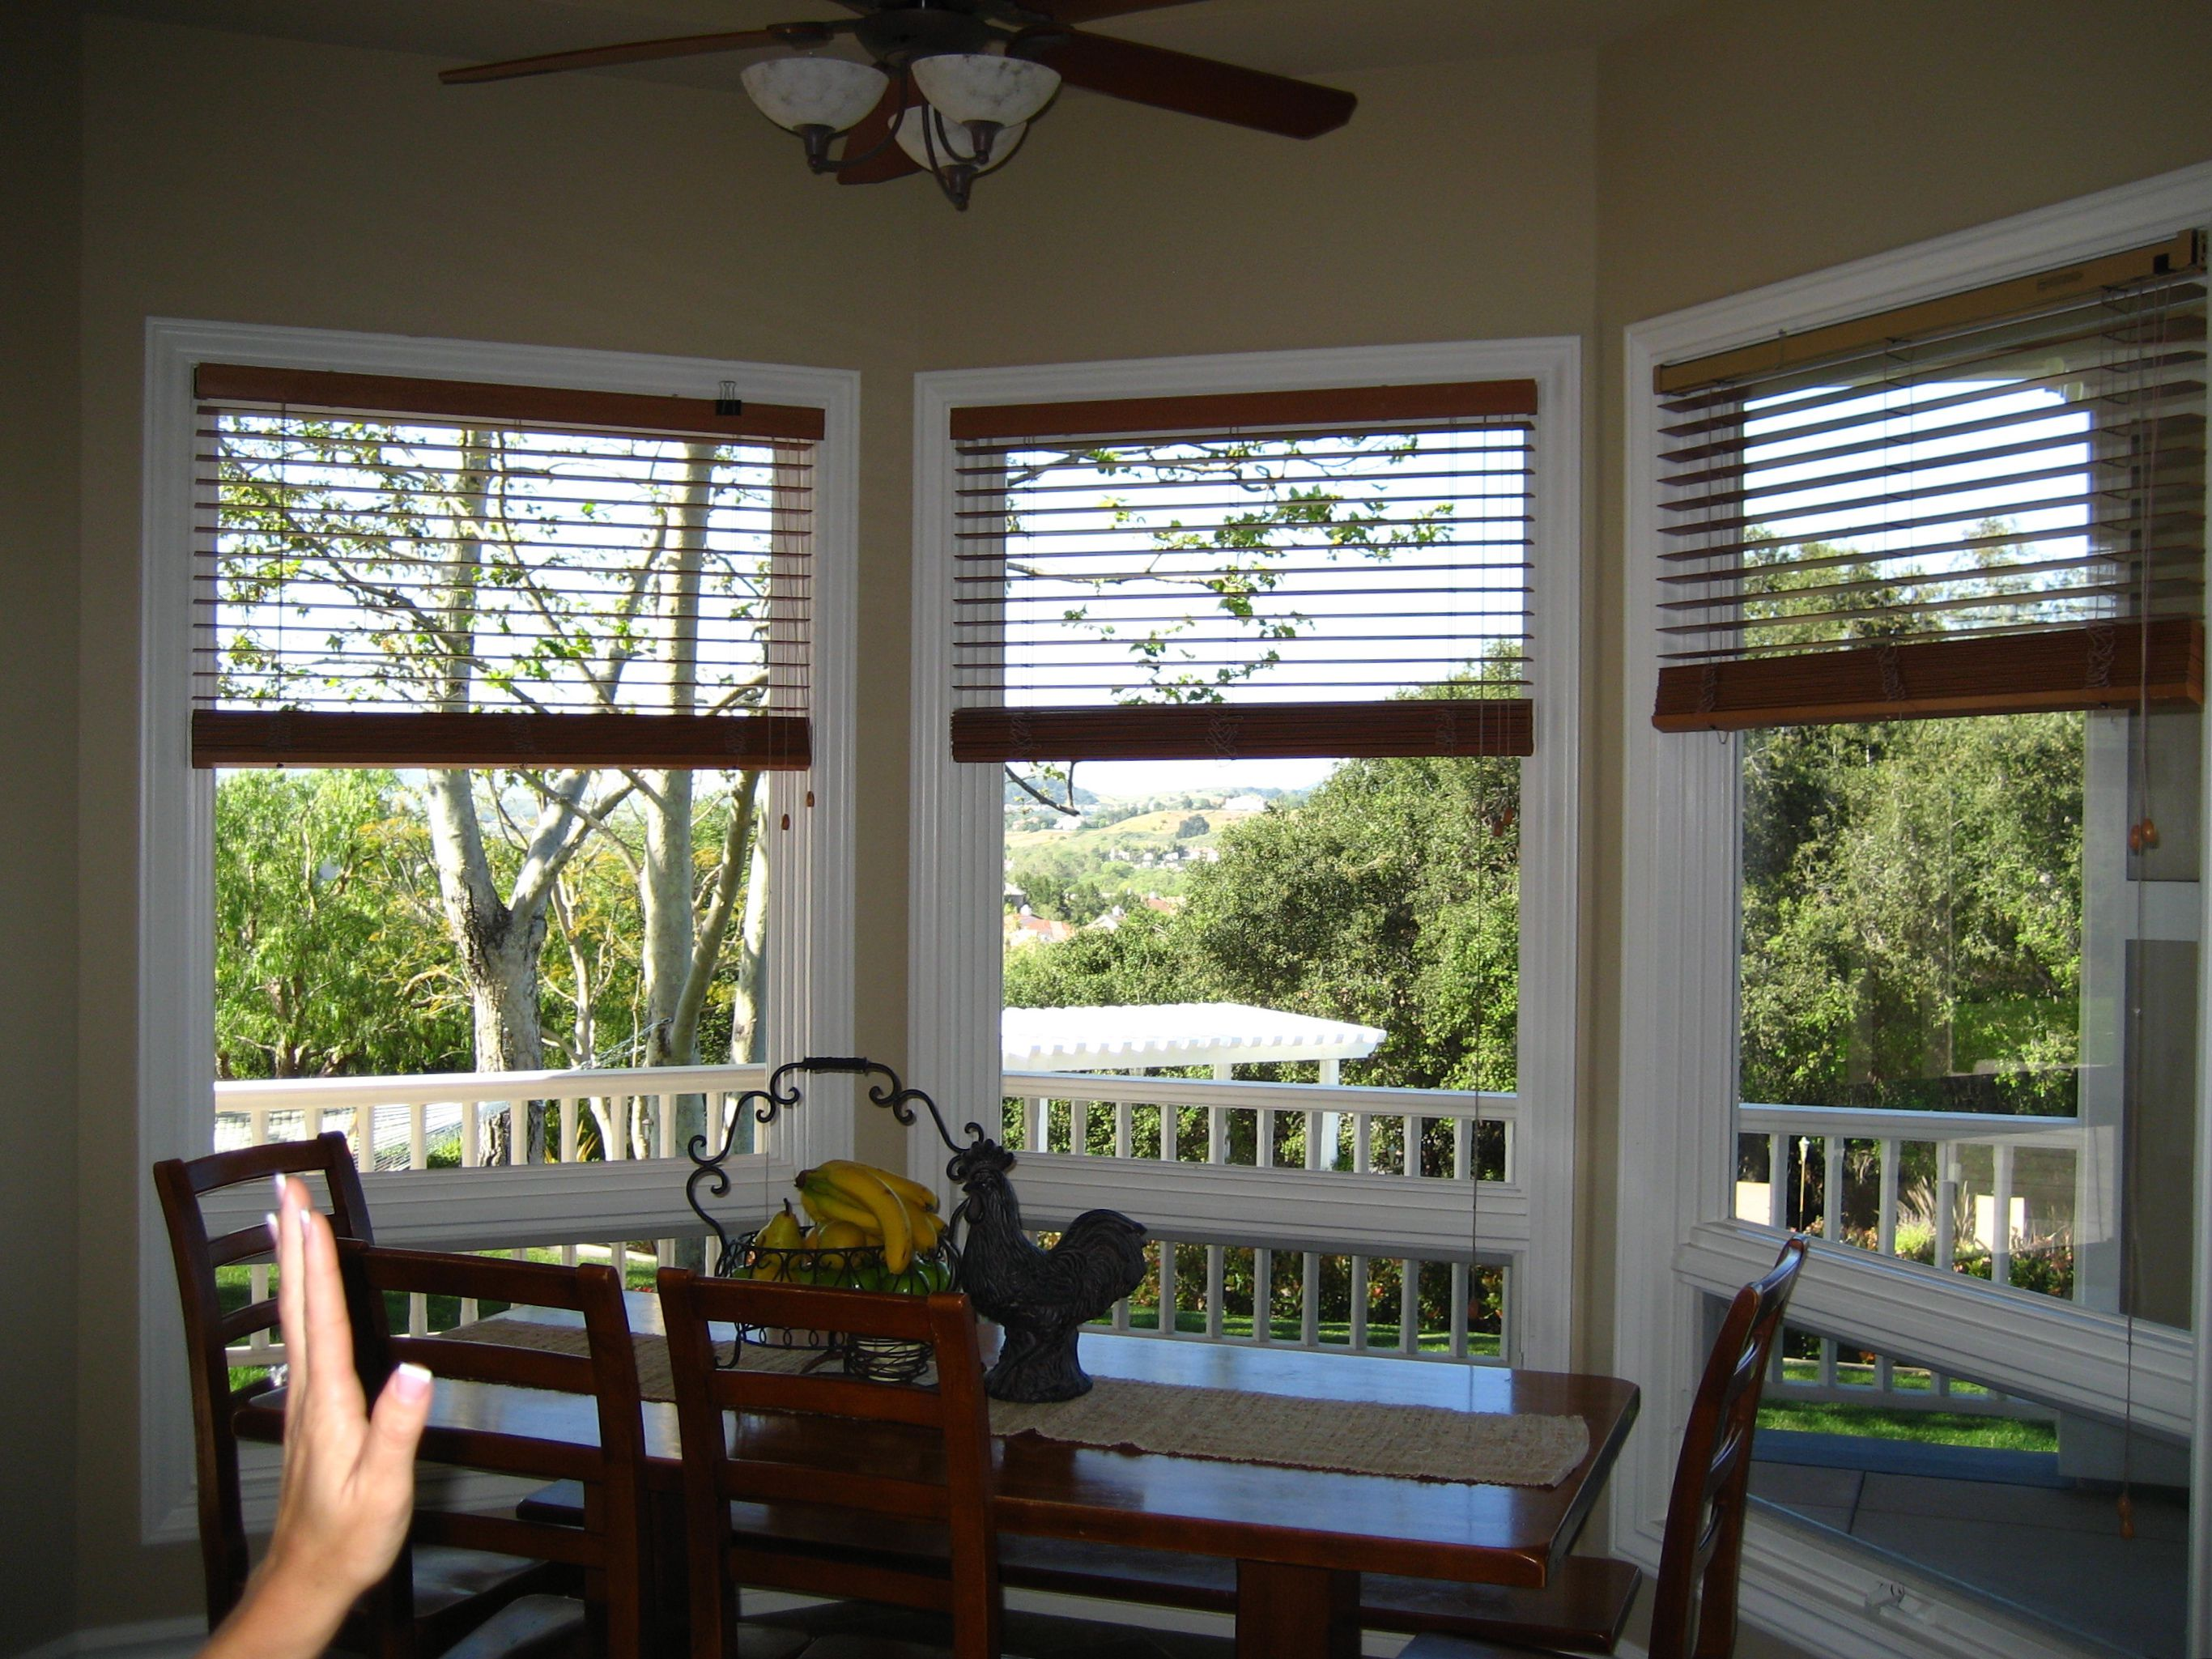 Captivating Window Curtain Ideas also Table and Chair For Dining Space